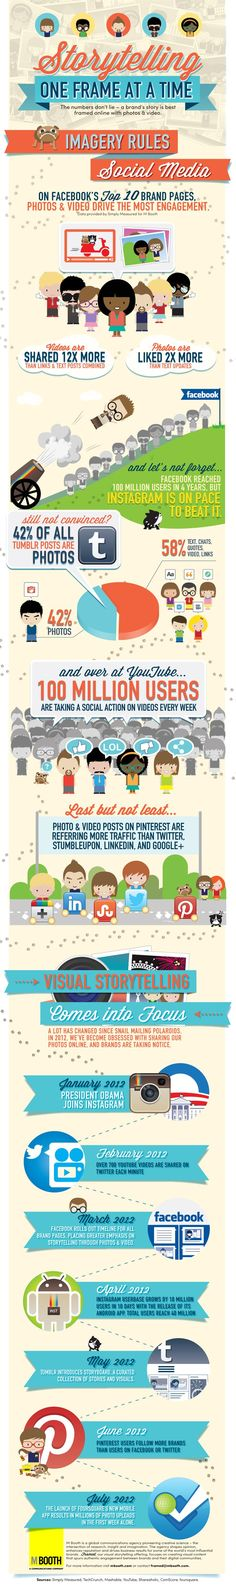 Imagery rules #socialmedia. Use storytelling techniques and photos and video to drive engagement!